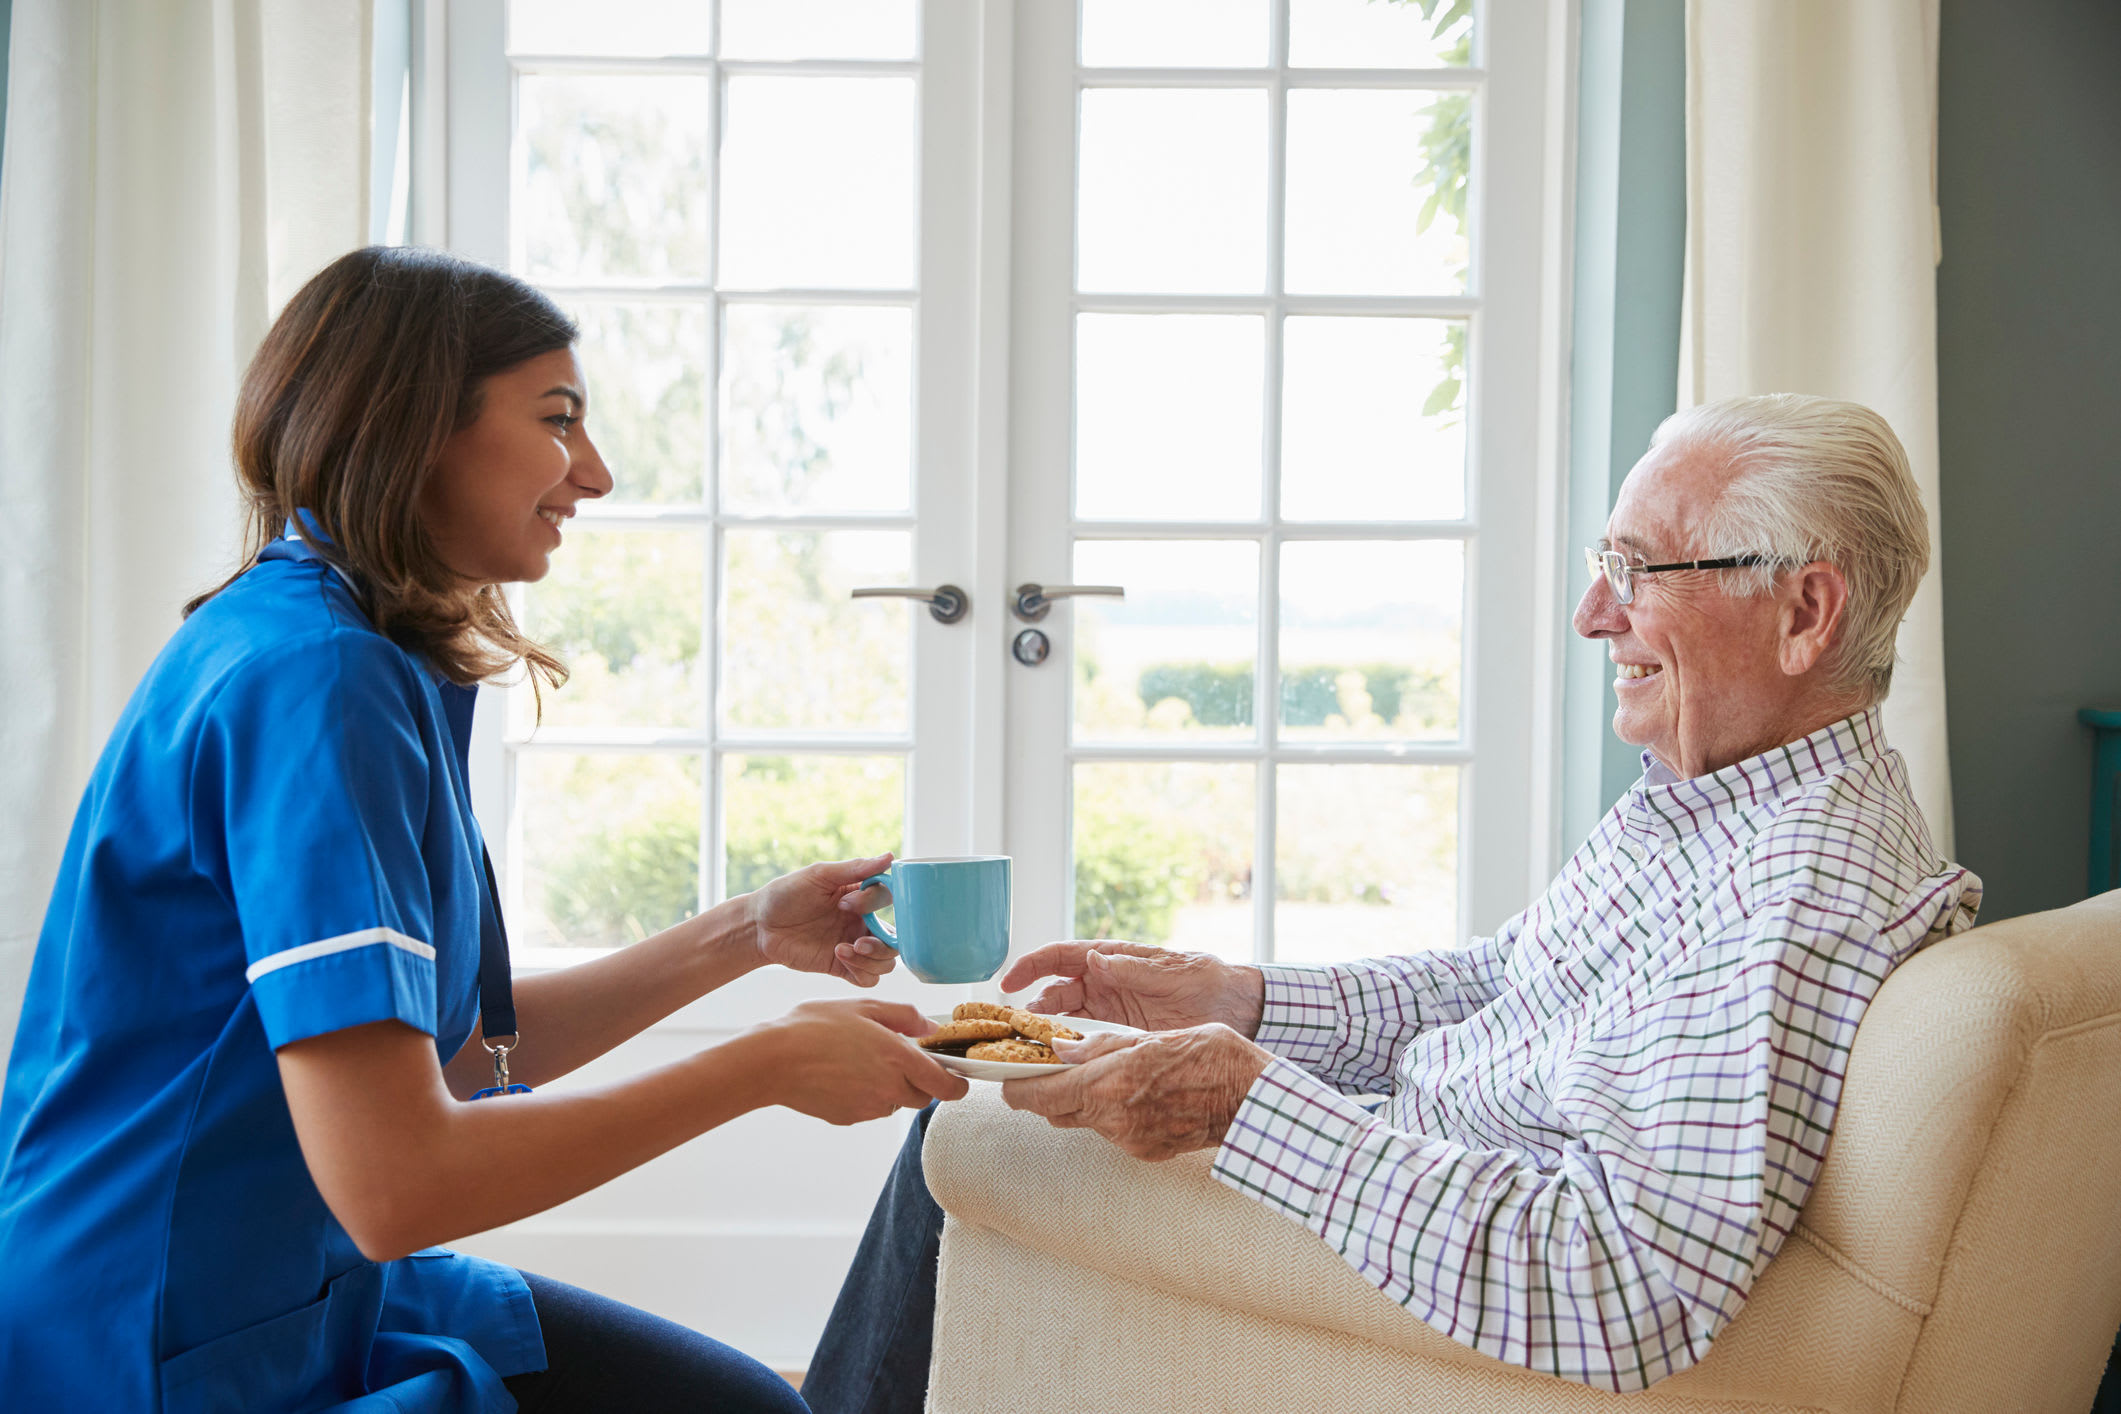 Caretaker delivering a drink to a resident at Serenity in East Peoria, Illinois